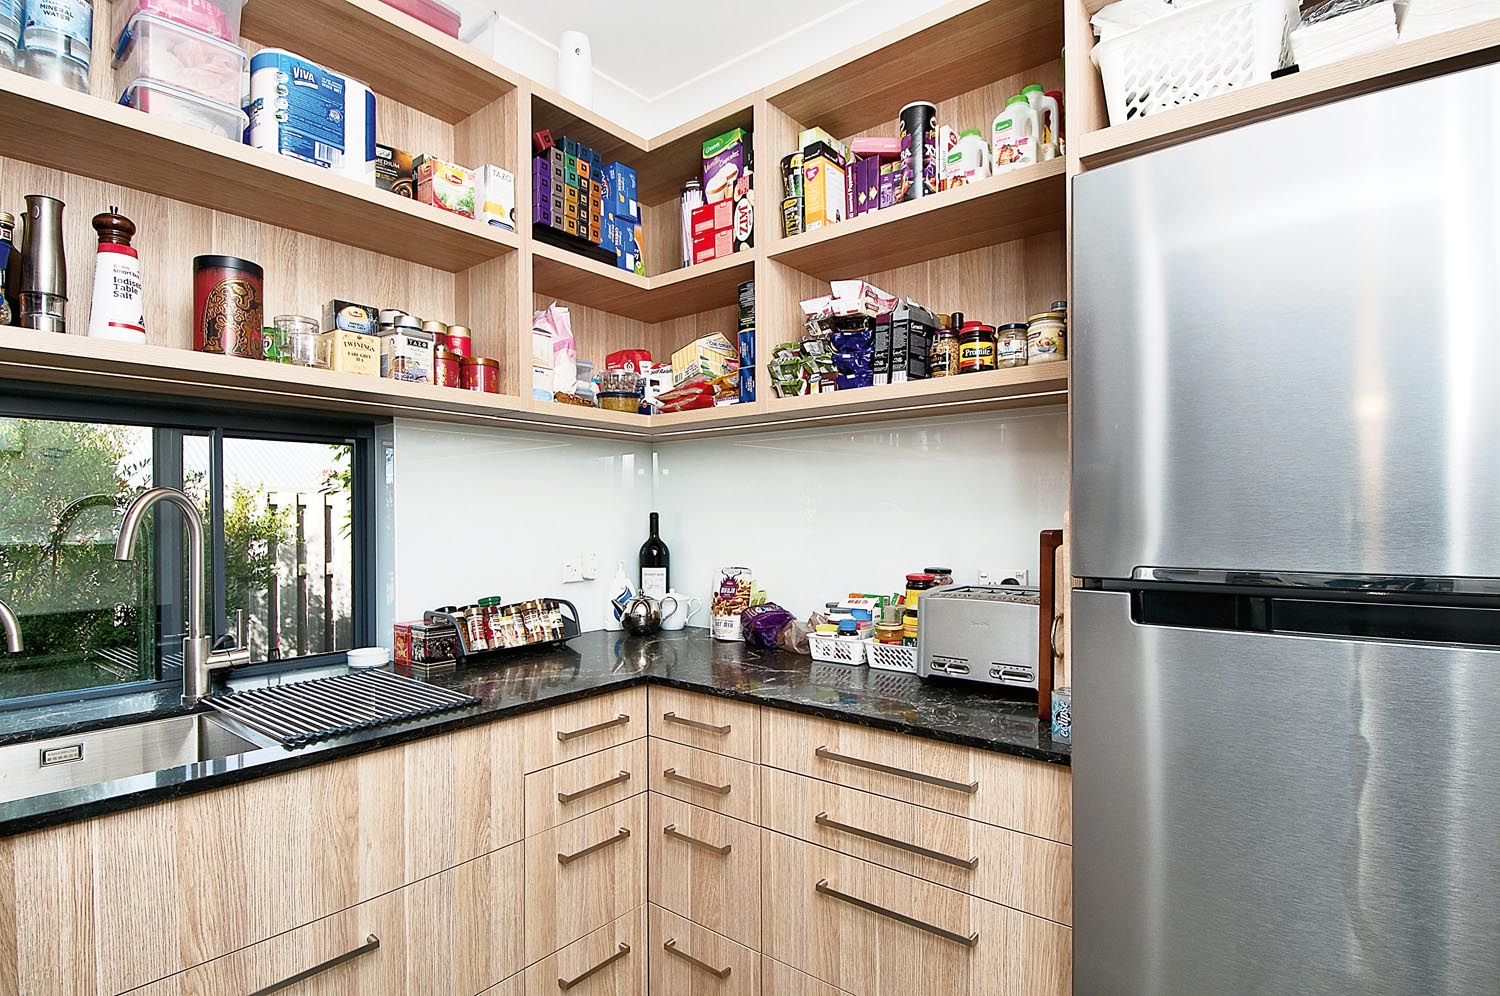 A simple kitchen with open pantry and a silver fridge